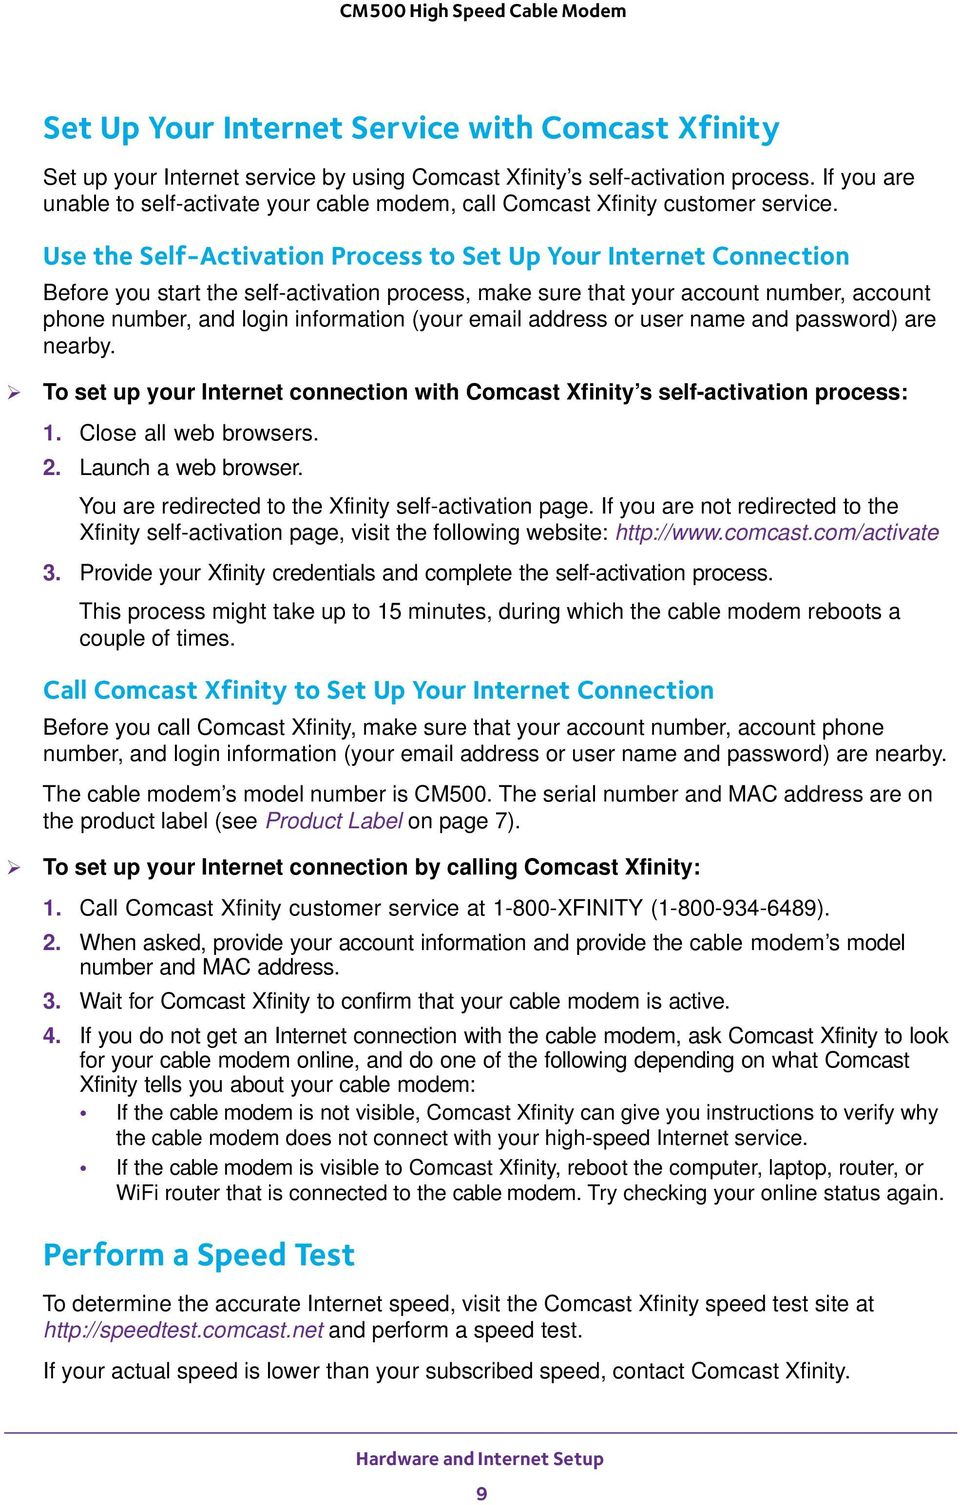 Cm500 High Speed Cable Modem User Manual Pdf Comcast Wiring Diagram Use The Self Activation Process To Set Up Your Internet Connection Before You Start 10 Connect